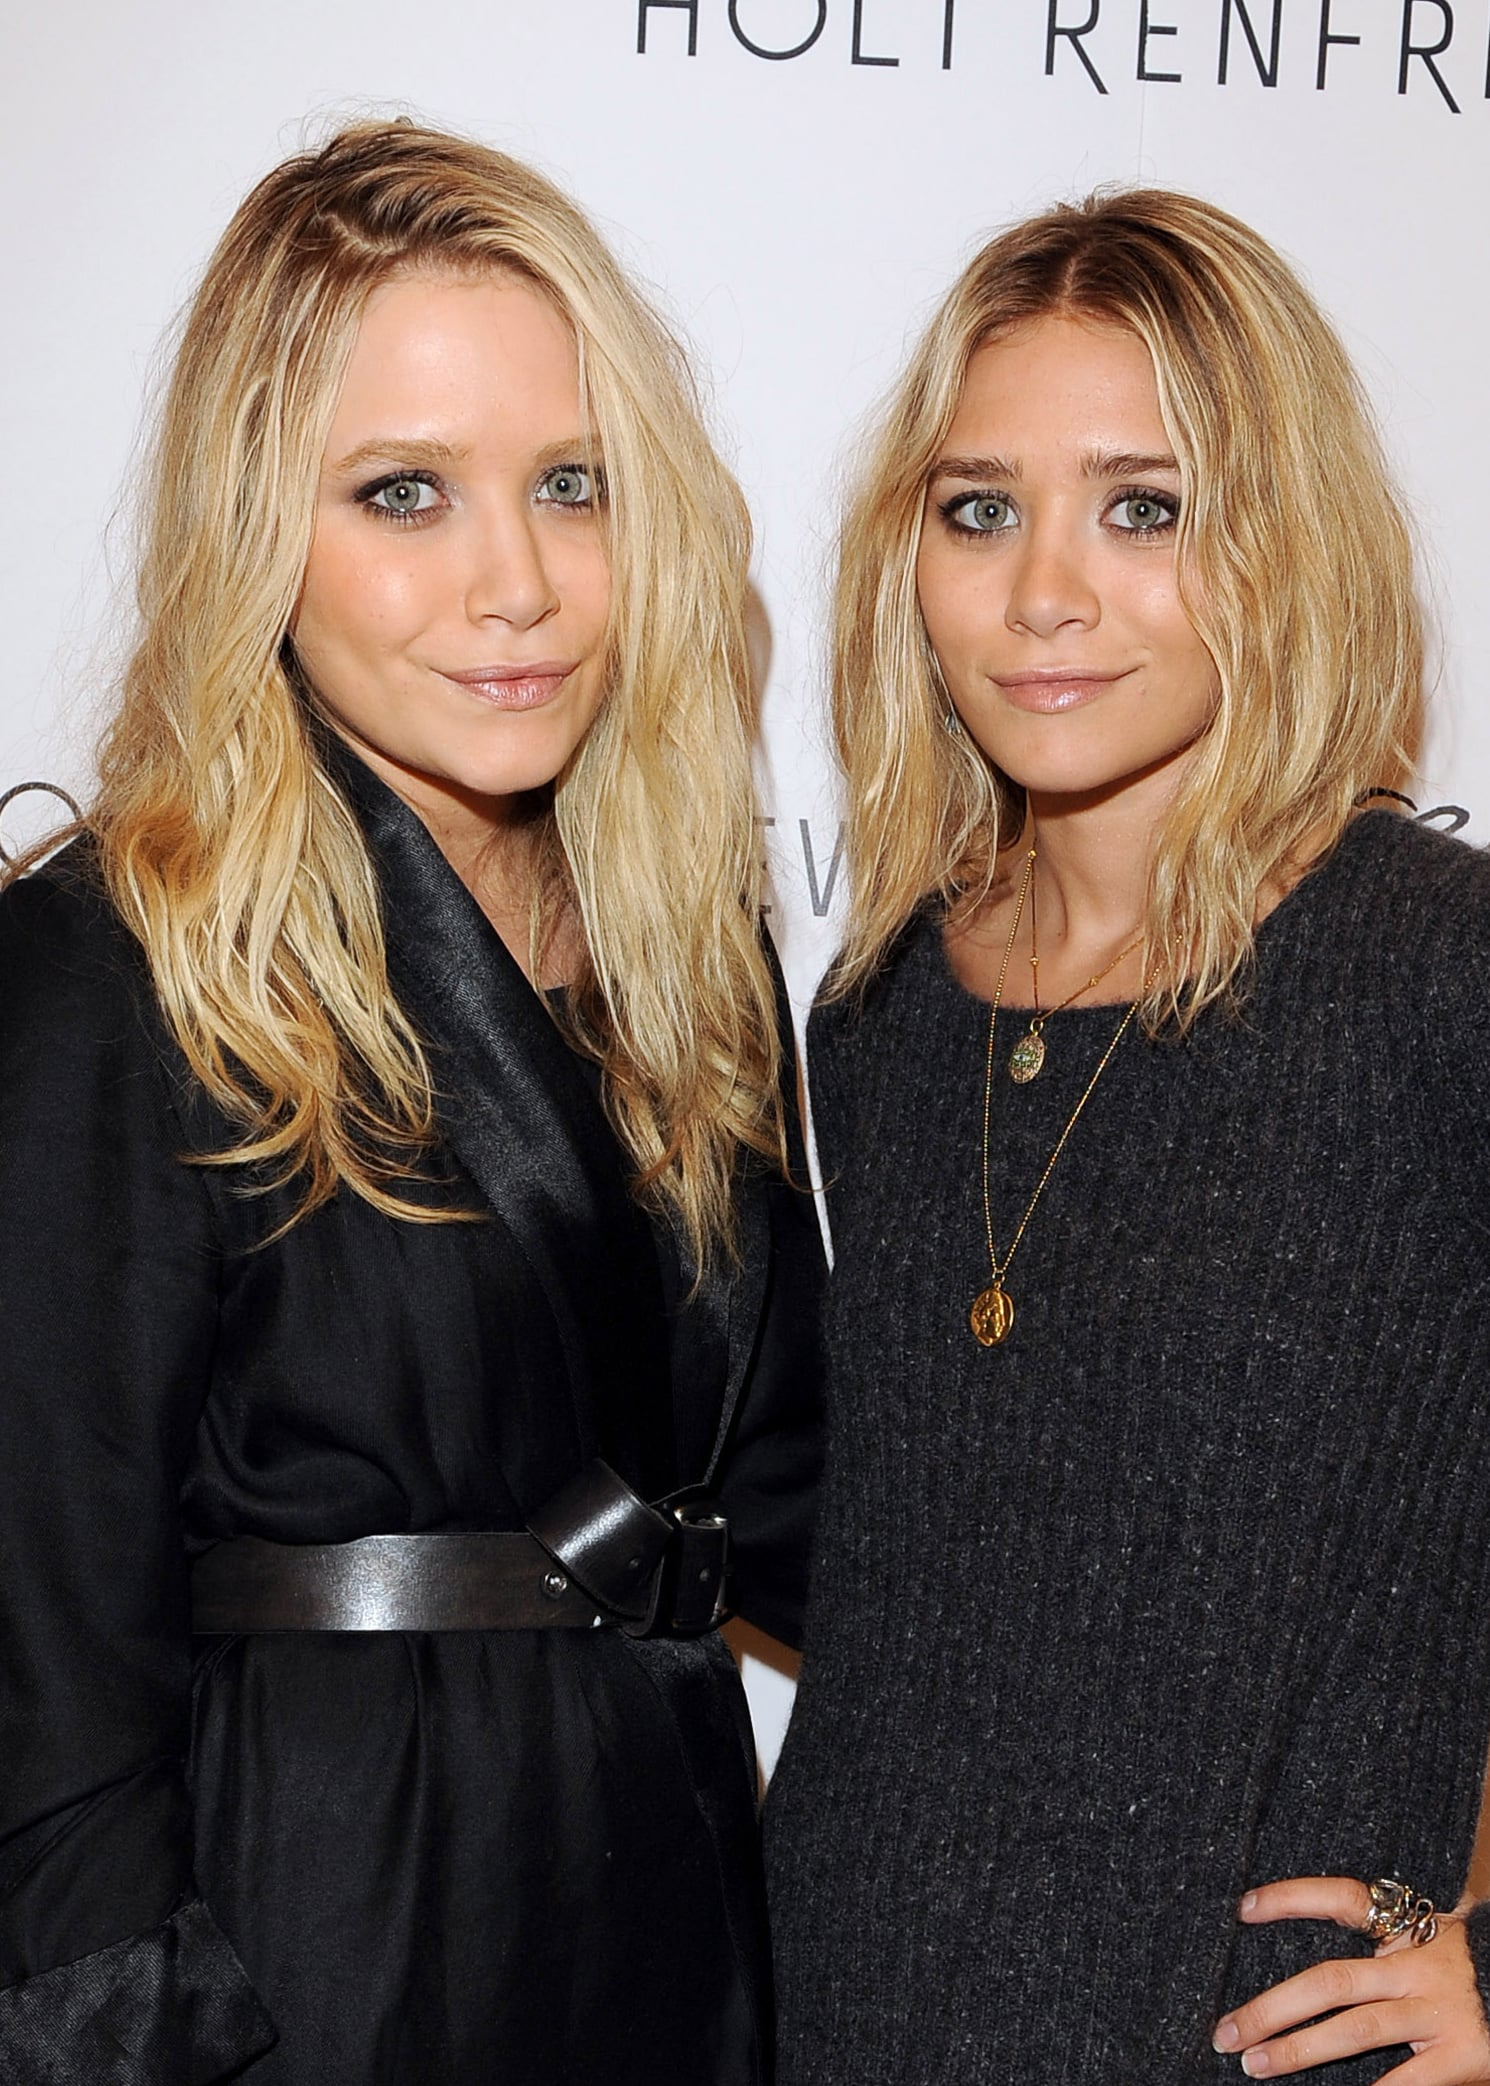 At a 2009 event for their fashion label Elizabeth and James, the two went for another similar look, except Ashley had a slightly shorter cut.